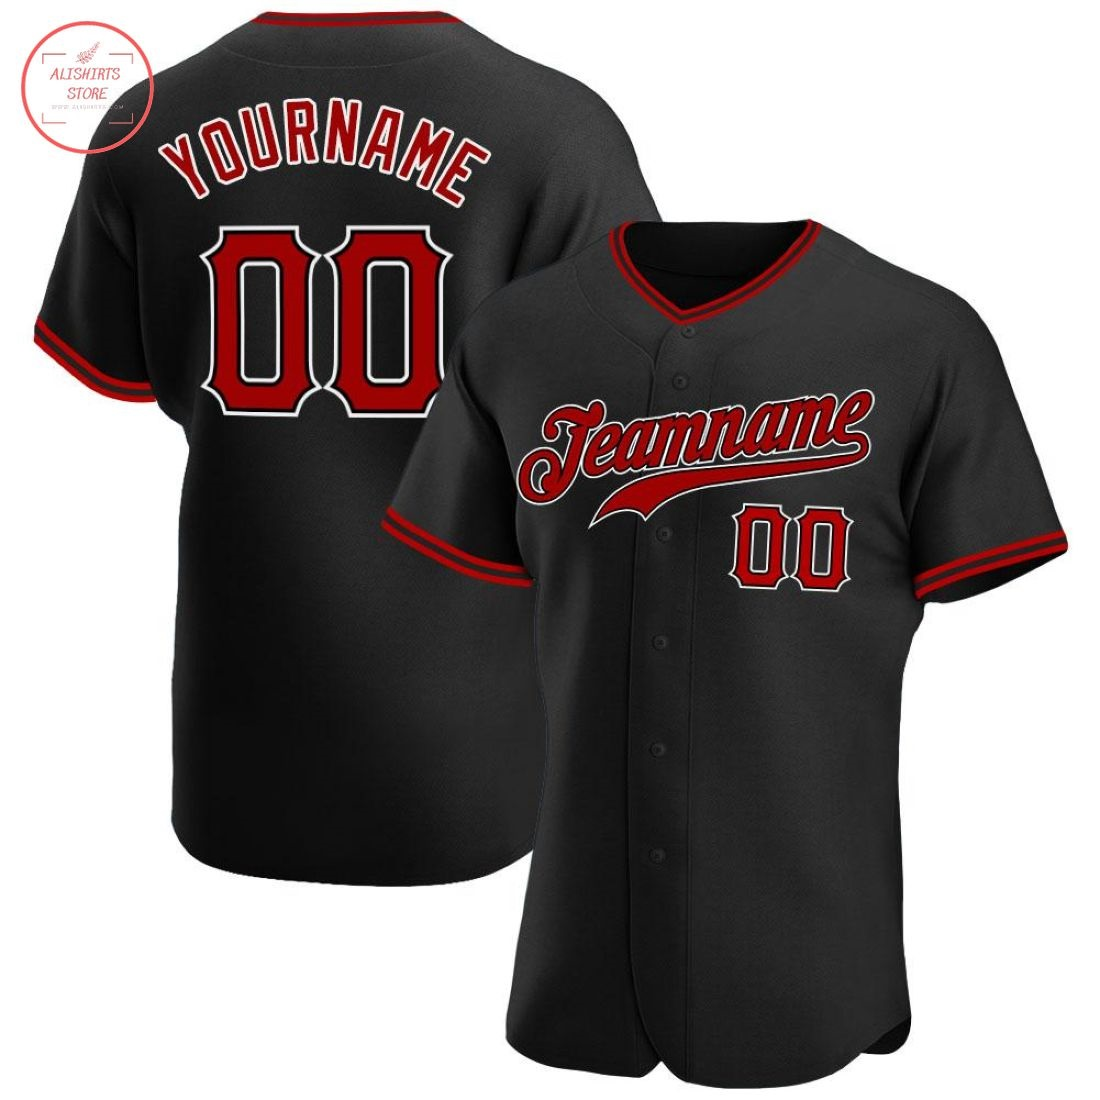 red and white baseball jersey